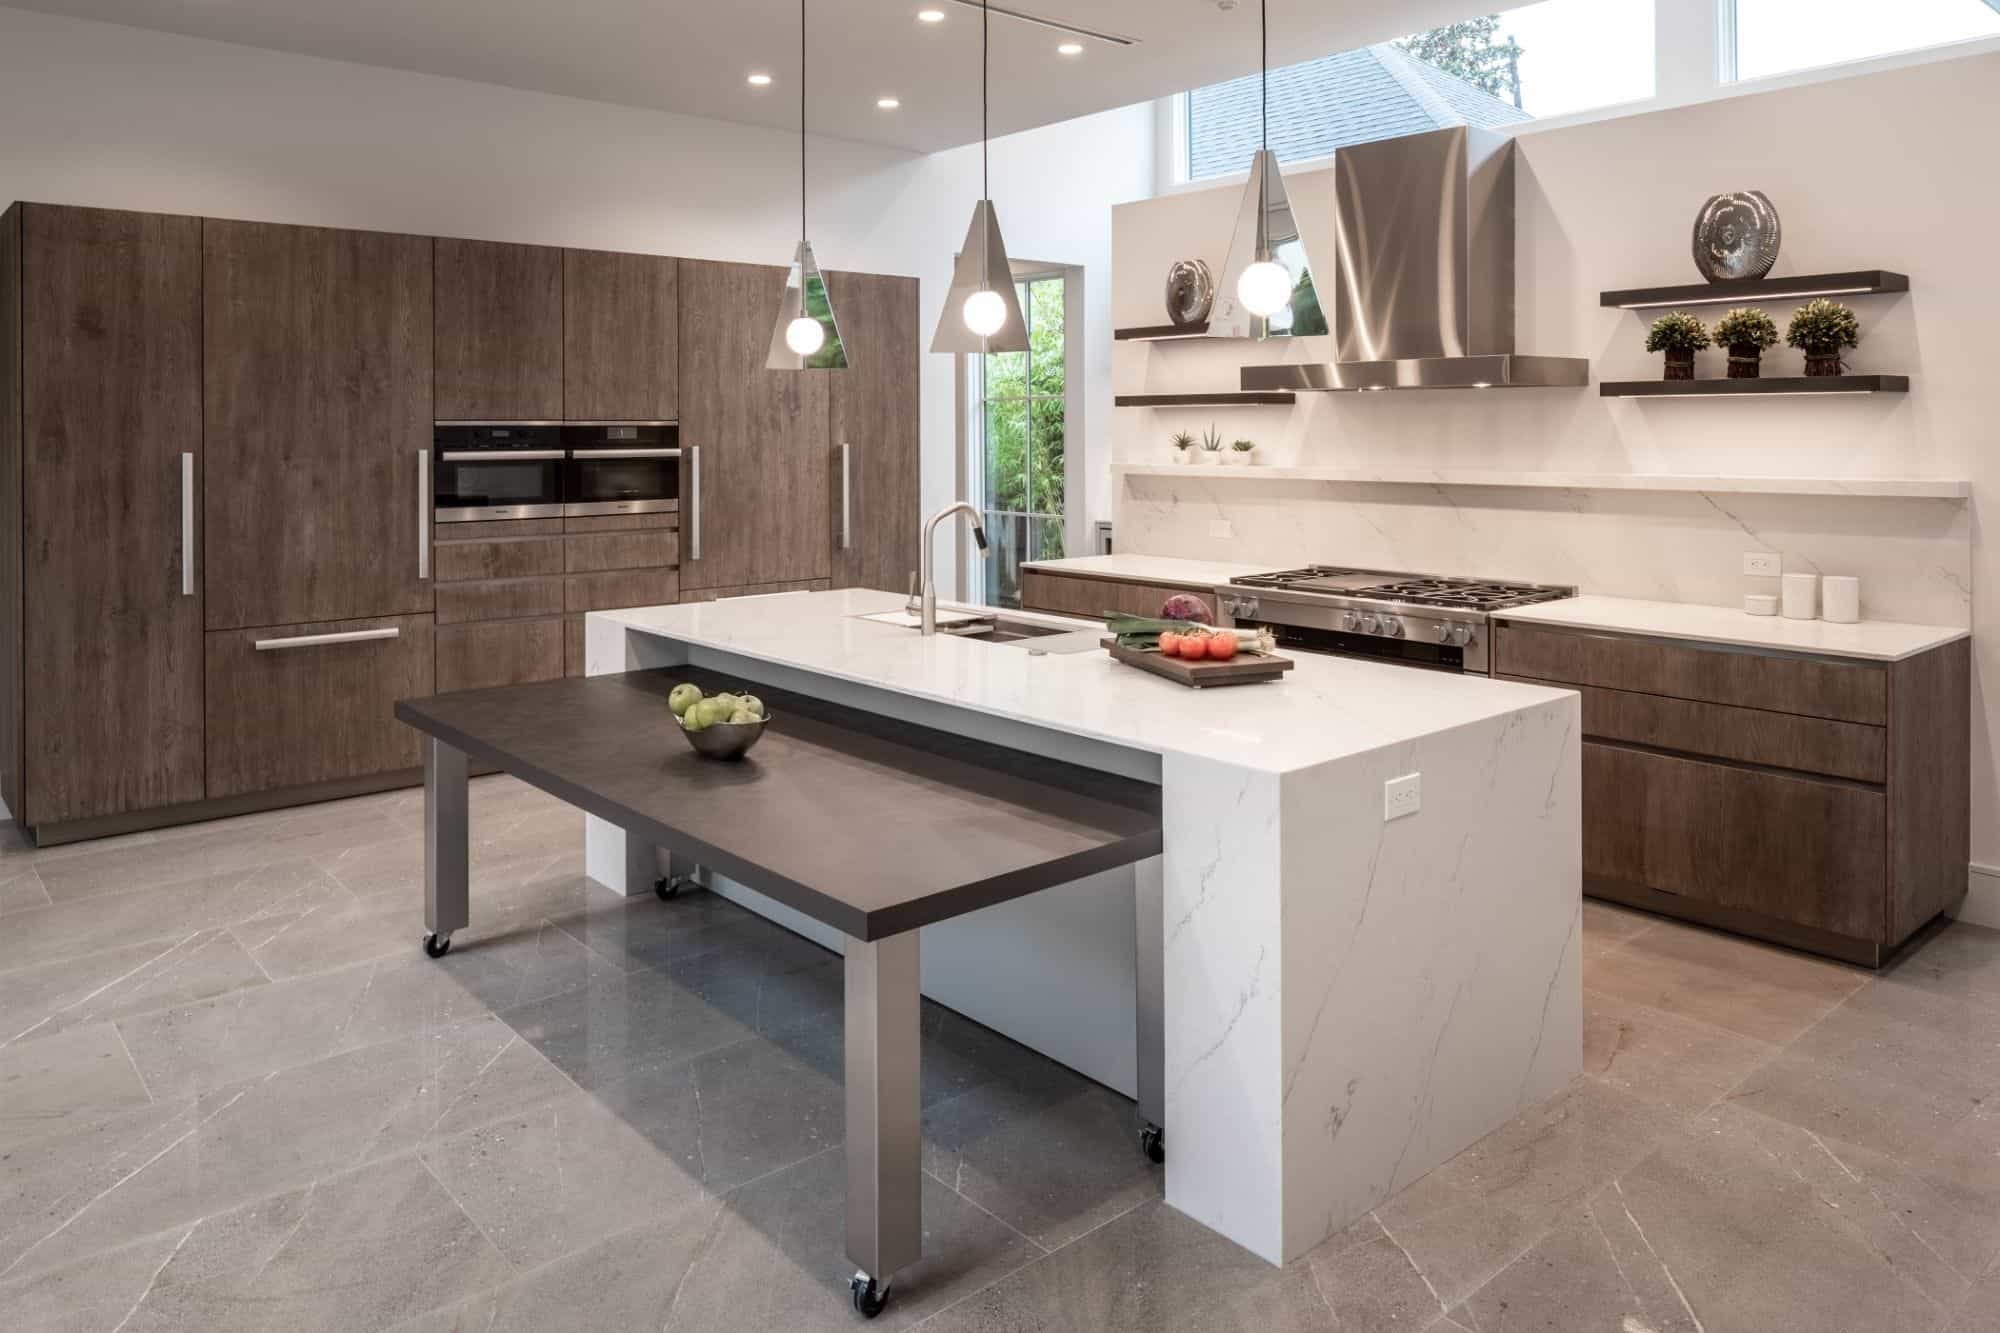 A custom nesting table in this chic german-built kitchen is the perfect answer to a flexible space-saving design